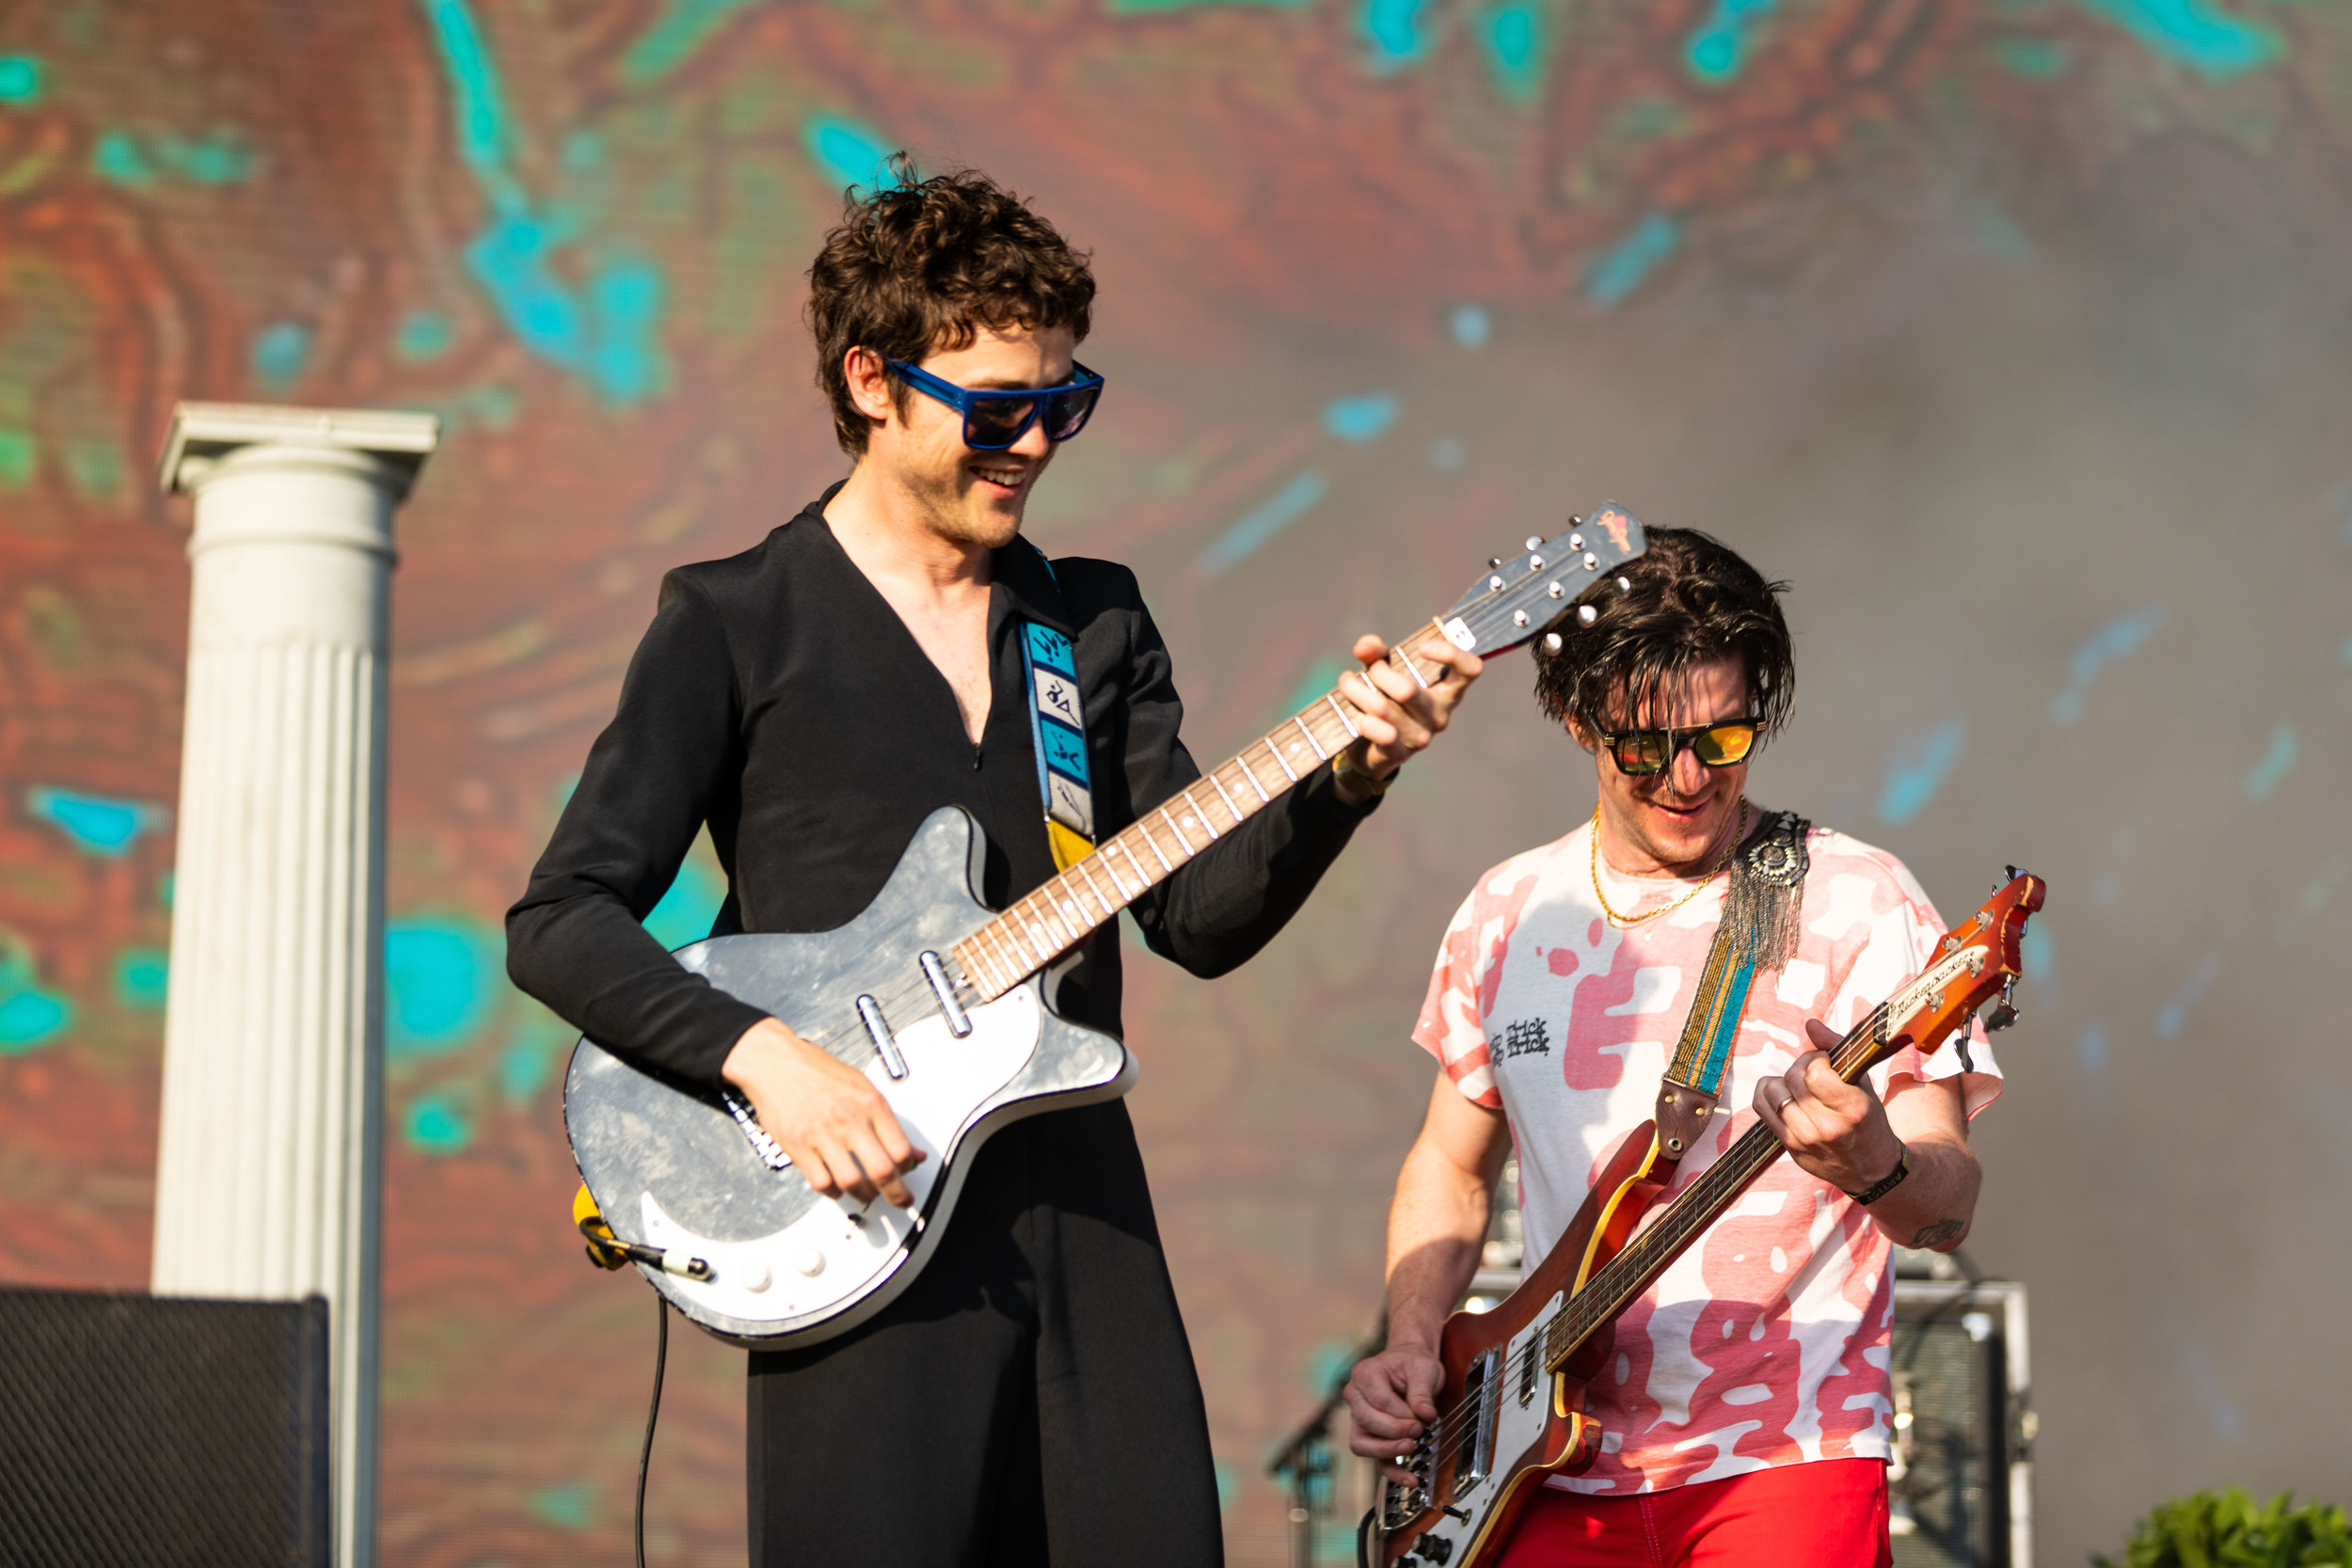 Poulos-Firefly2018-MGMT-9.jpg